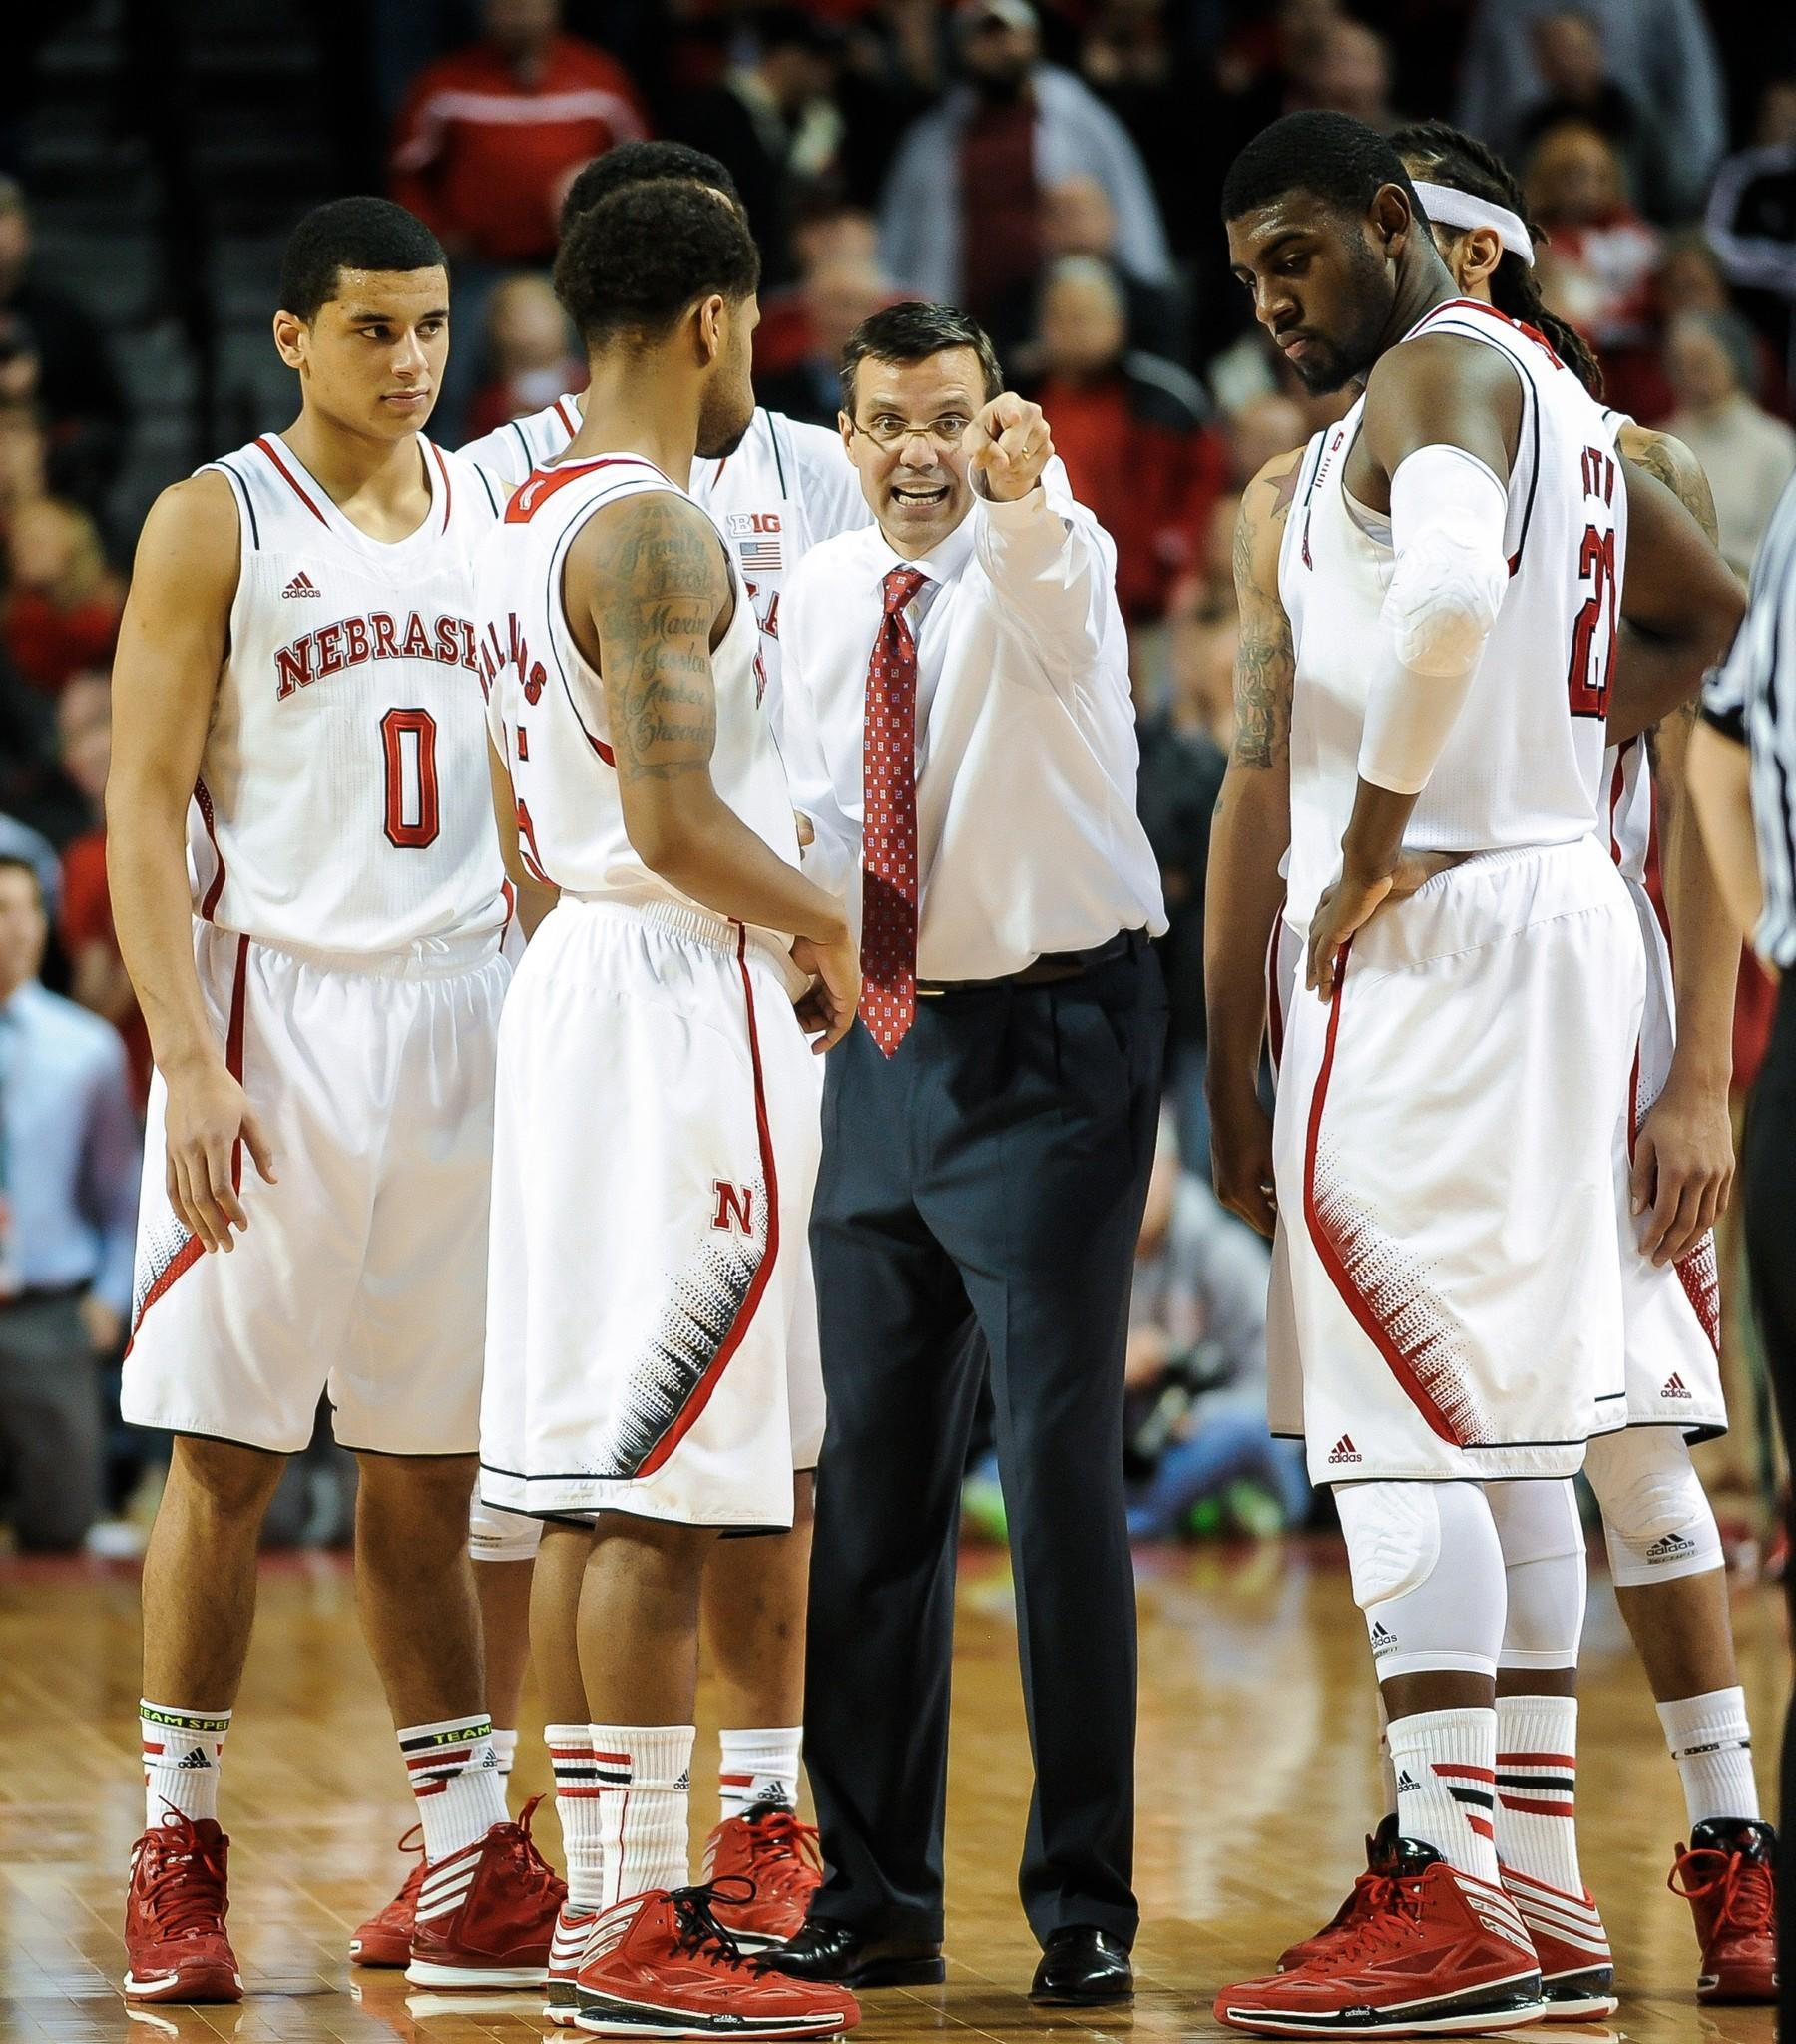 Nebraska coach Tim Miles directs his team during a game against Indiana.